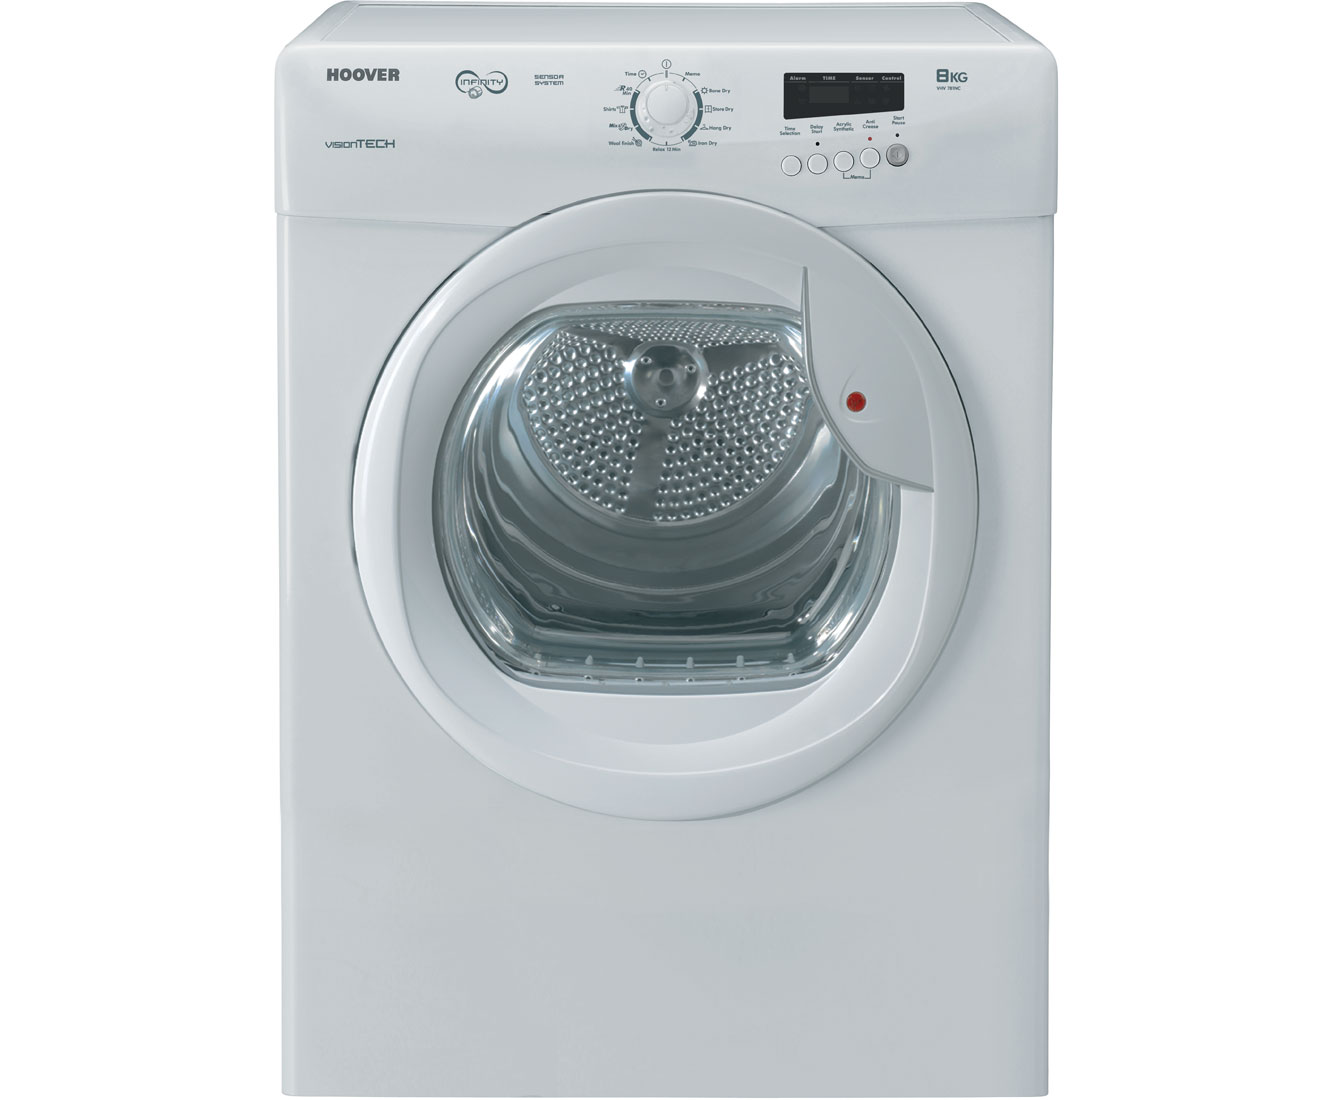 Hoover VHV781NC Vented Tumble Dryer - White